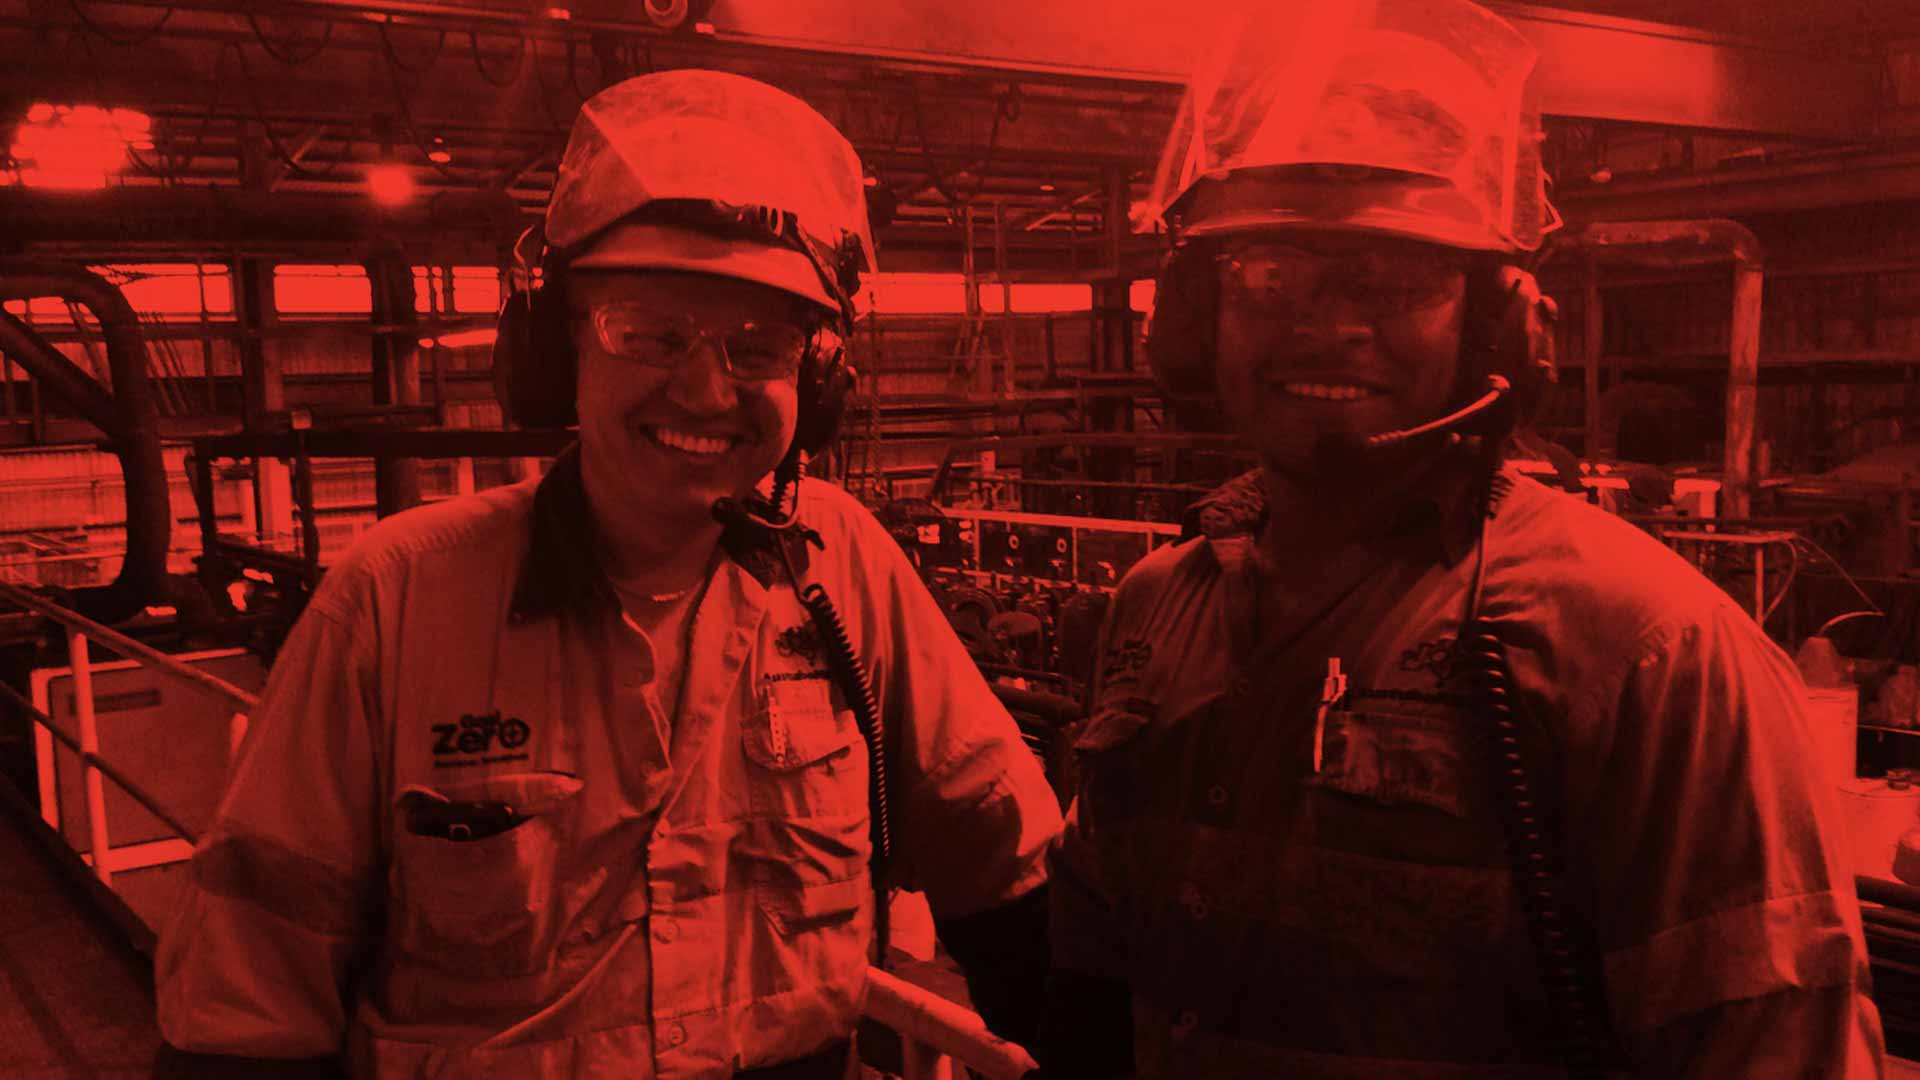 - AUSTUBE MILLS: AUSTRALIA'S LARGEST PIPE MANUFACTURER CLOCKS UP 10 YEARS WITH MIGAS